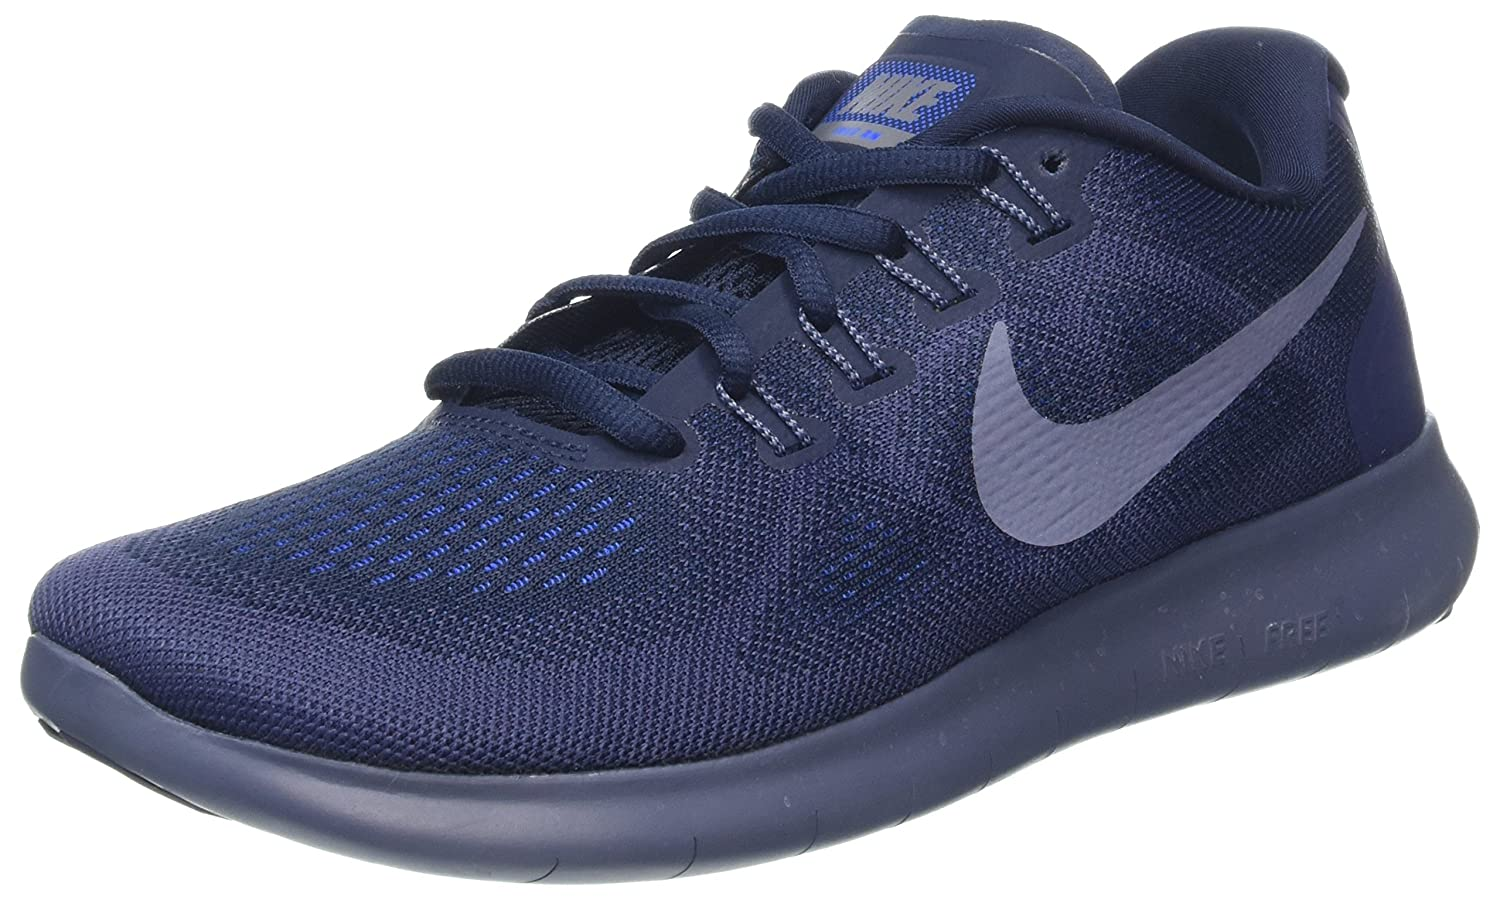 gris (Obsidian Light Light Carbon Neutral 408) Nike Libre RN 2017, Chaussures de FonctionneHommest Homme